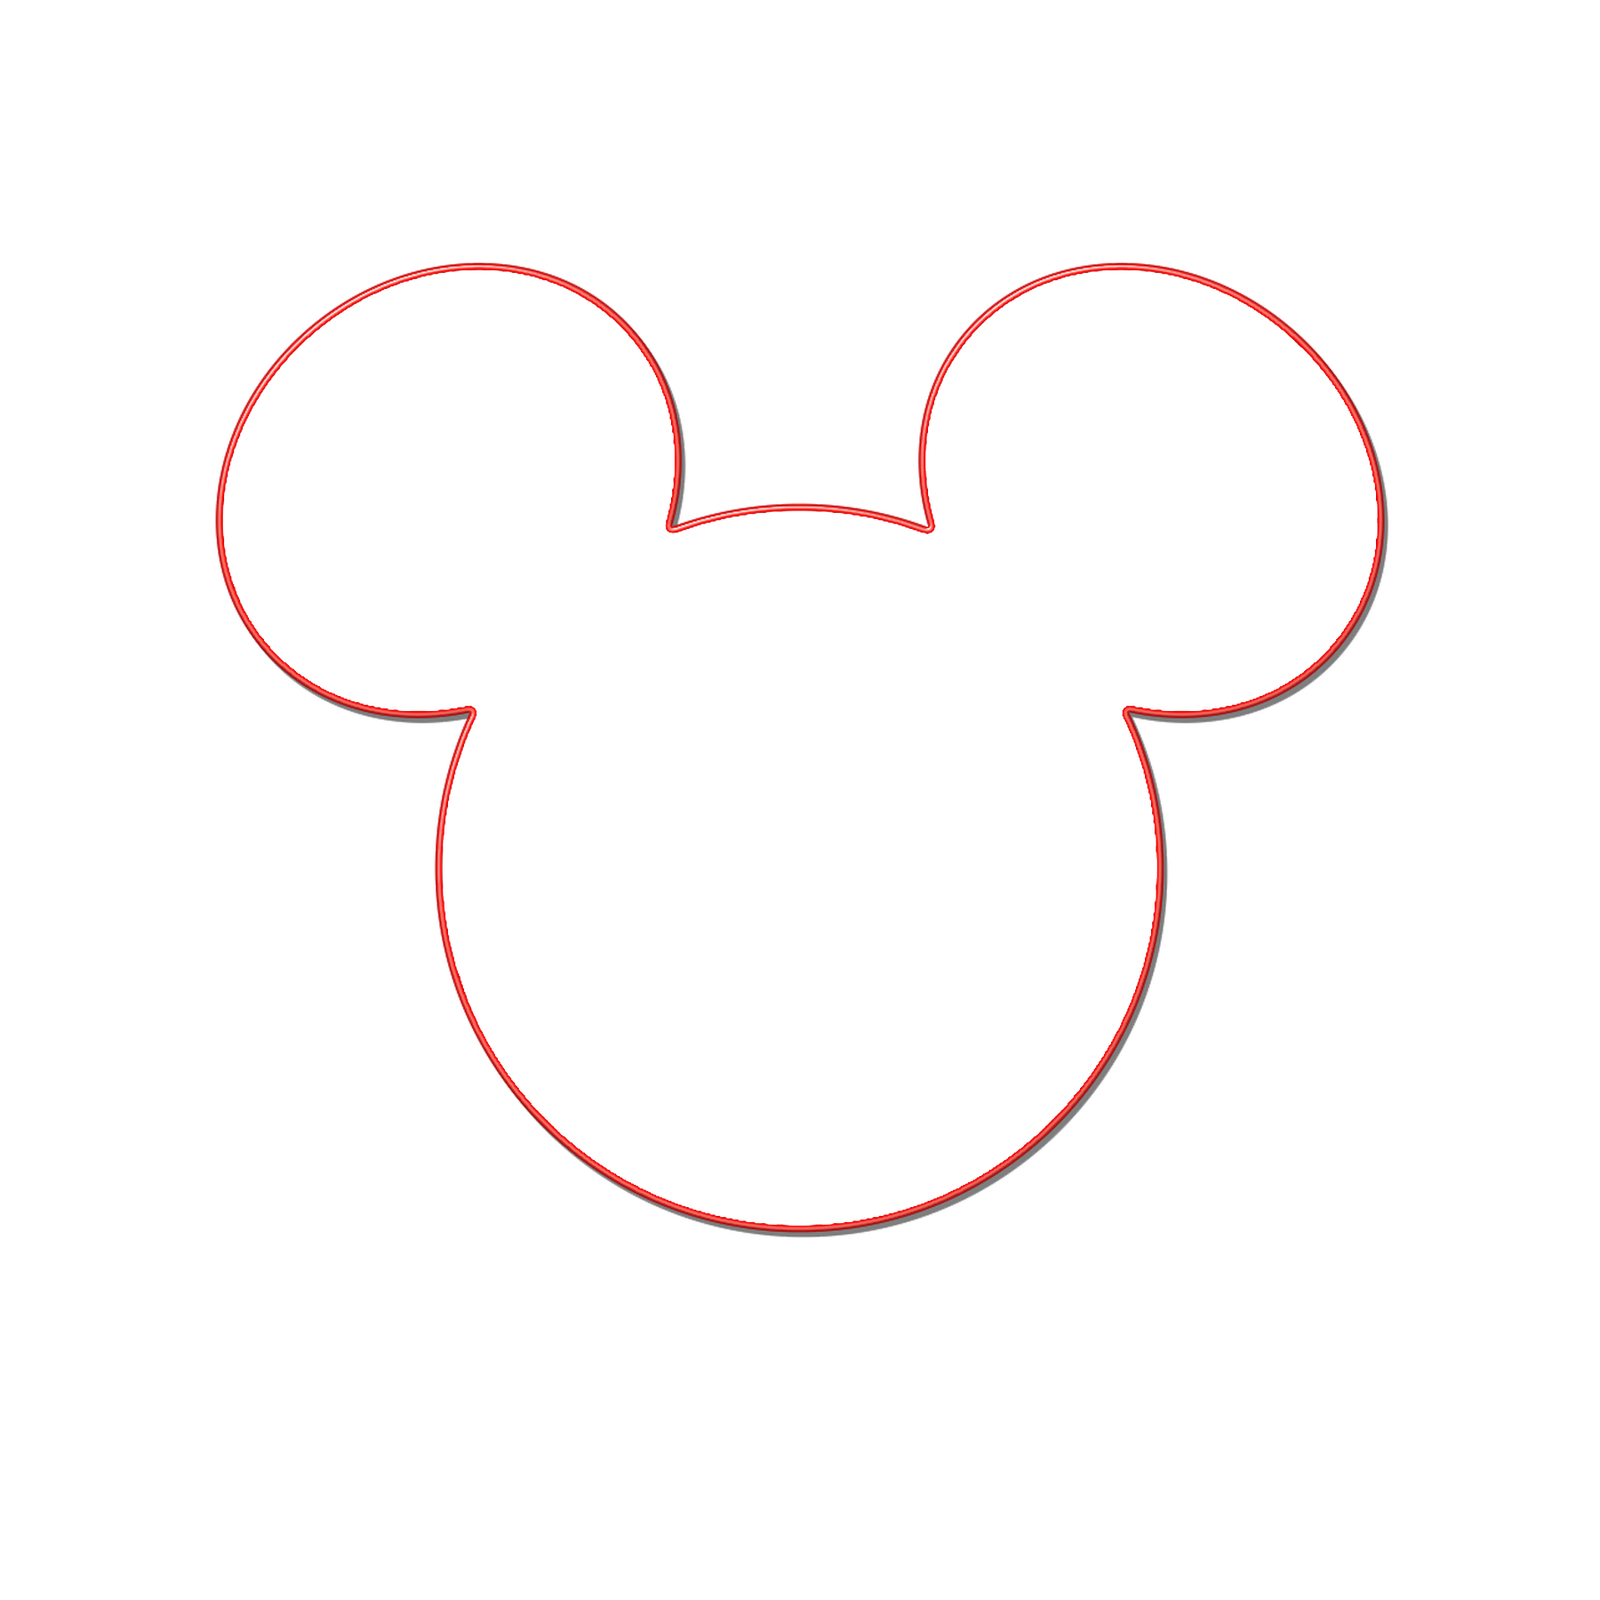 Milliepie's Musings: Making your own Mickey Head